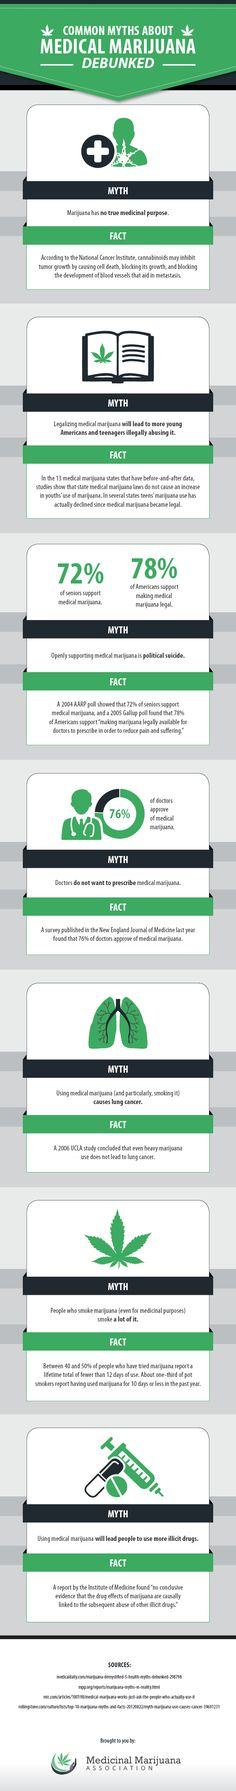 Infographic Debunking the Most Common Myths Surrounding Medical Cannabis/Marijuana